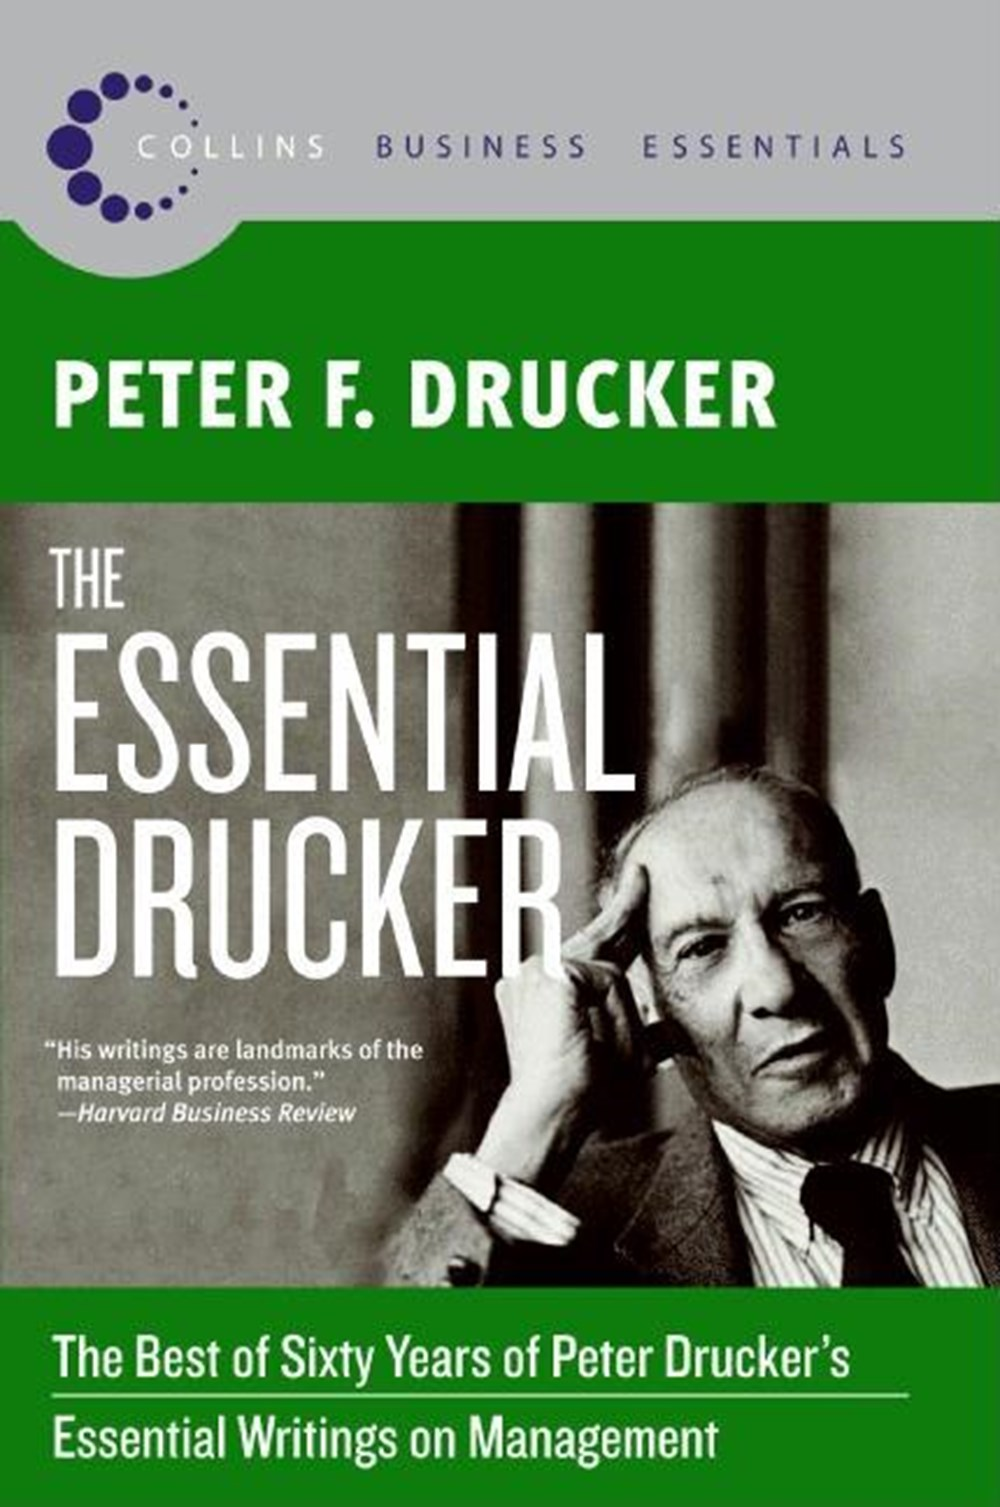 Essential Drucker The Best of Sixty Years of Peter Drucker's Essential Writings on Management